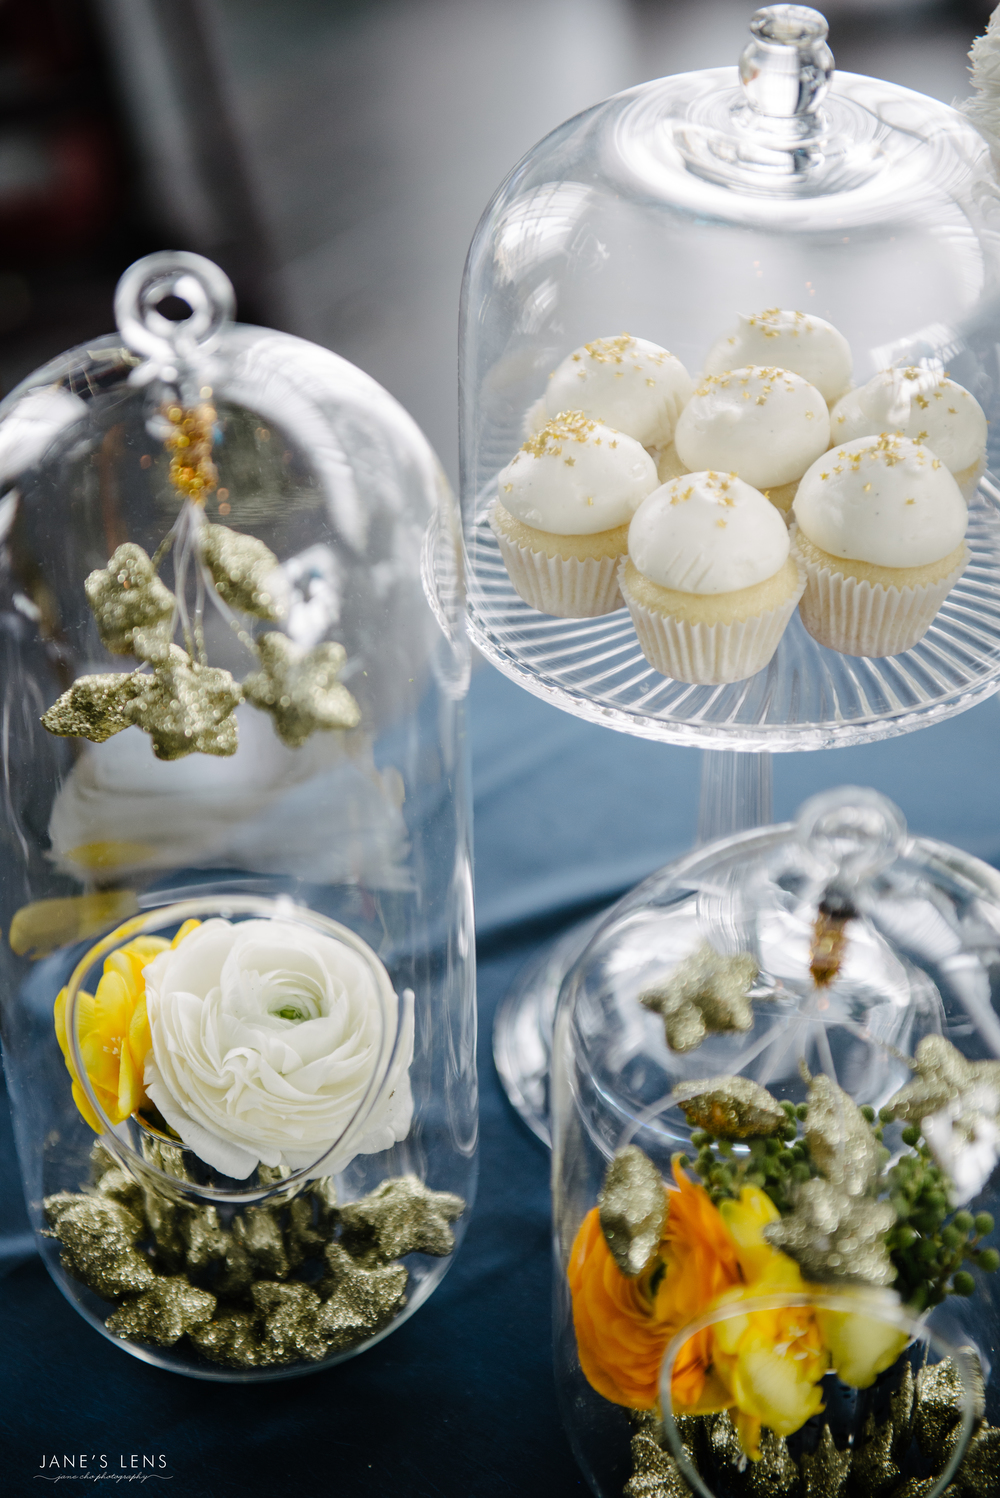 Twinkle Twinkle Little Star Dohl Dohlsang Jennifer Choi desserts Cupcakes flowers doljanchi.jpg